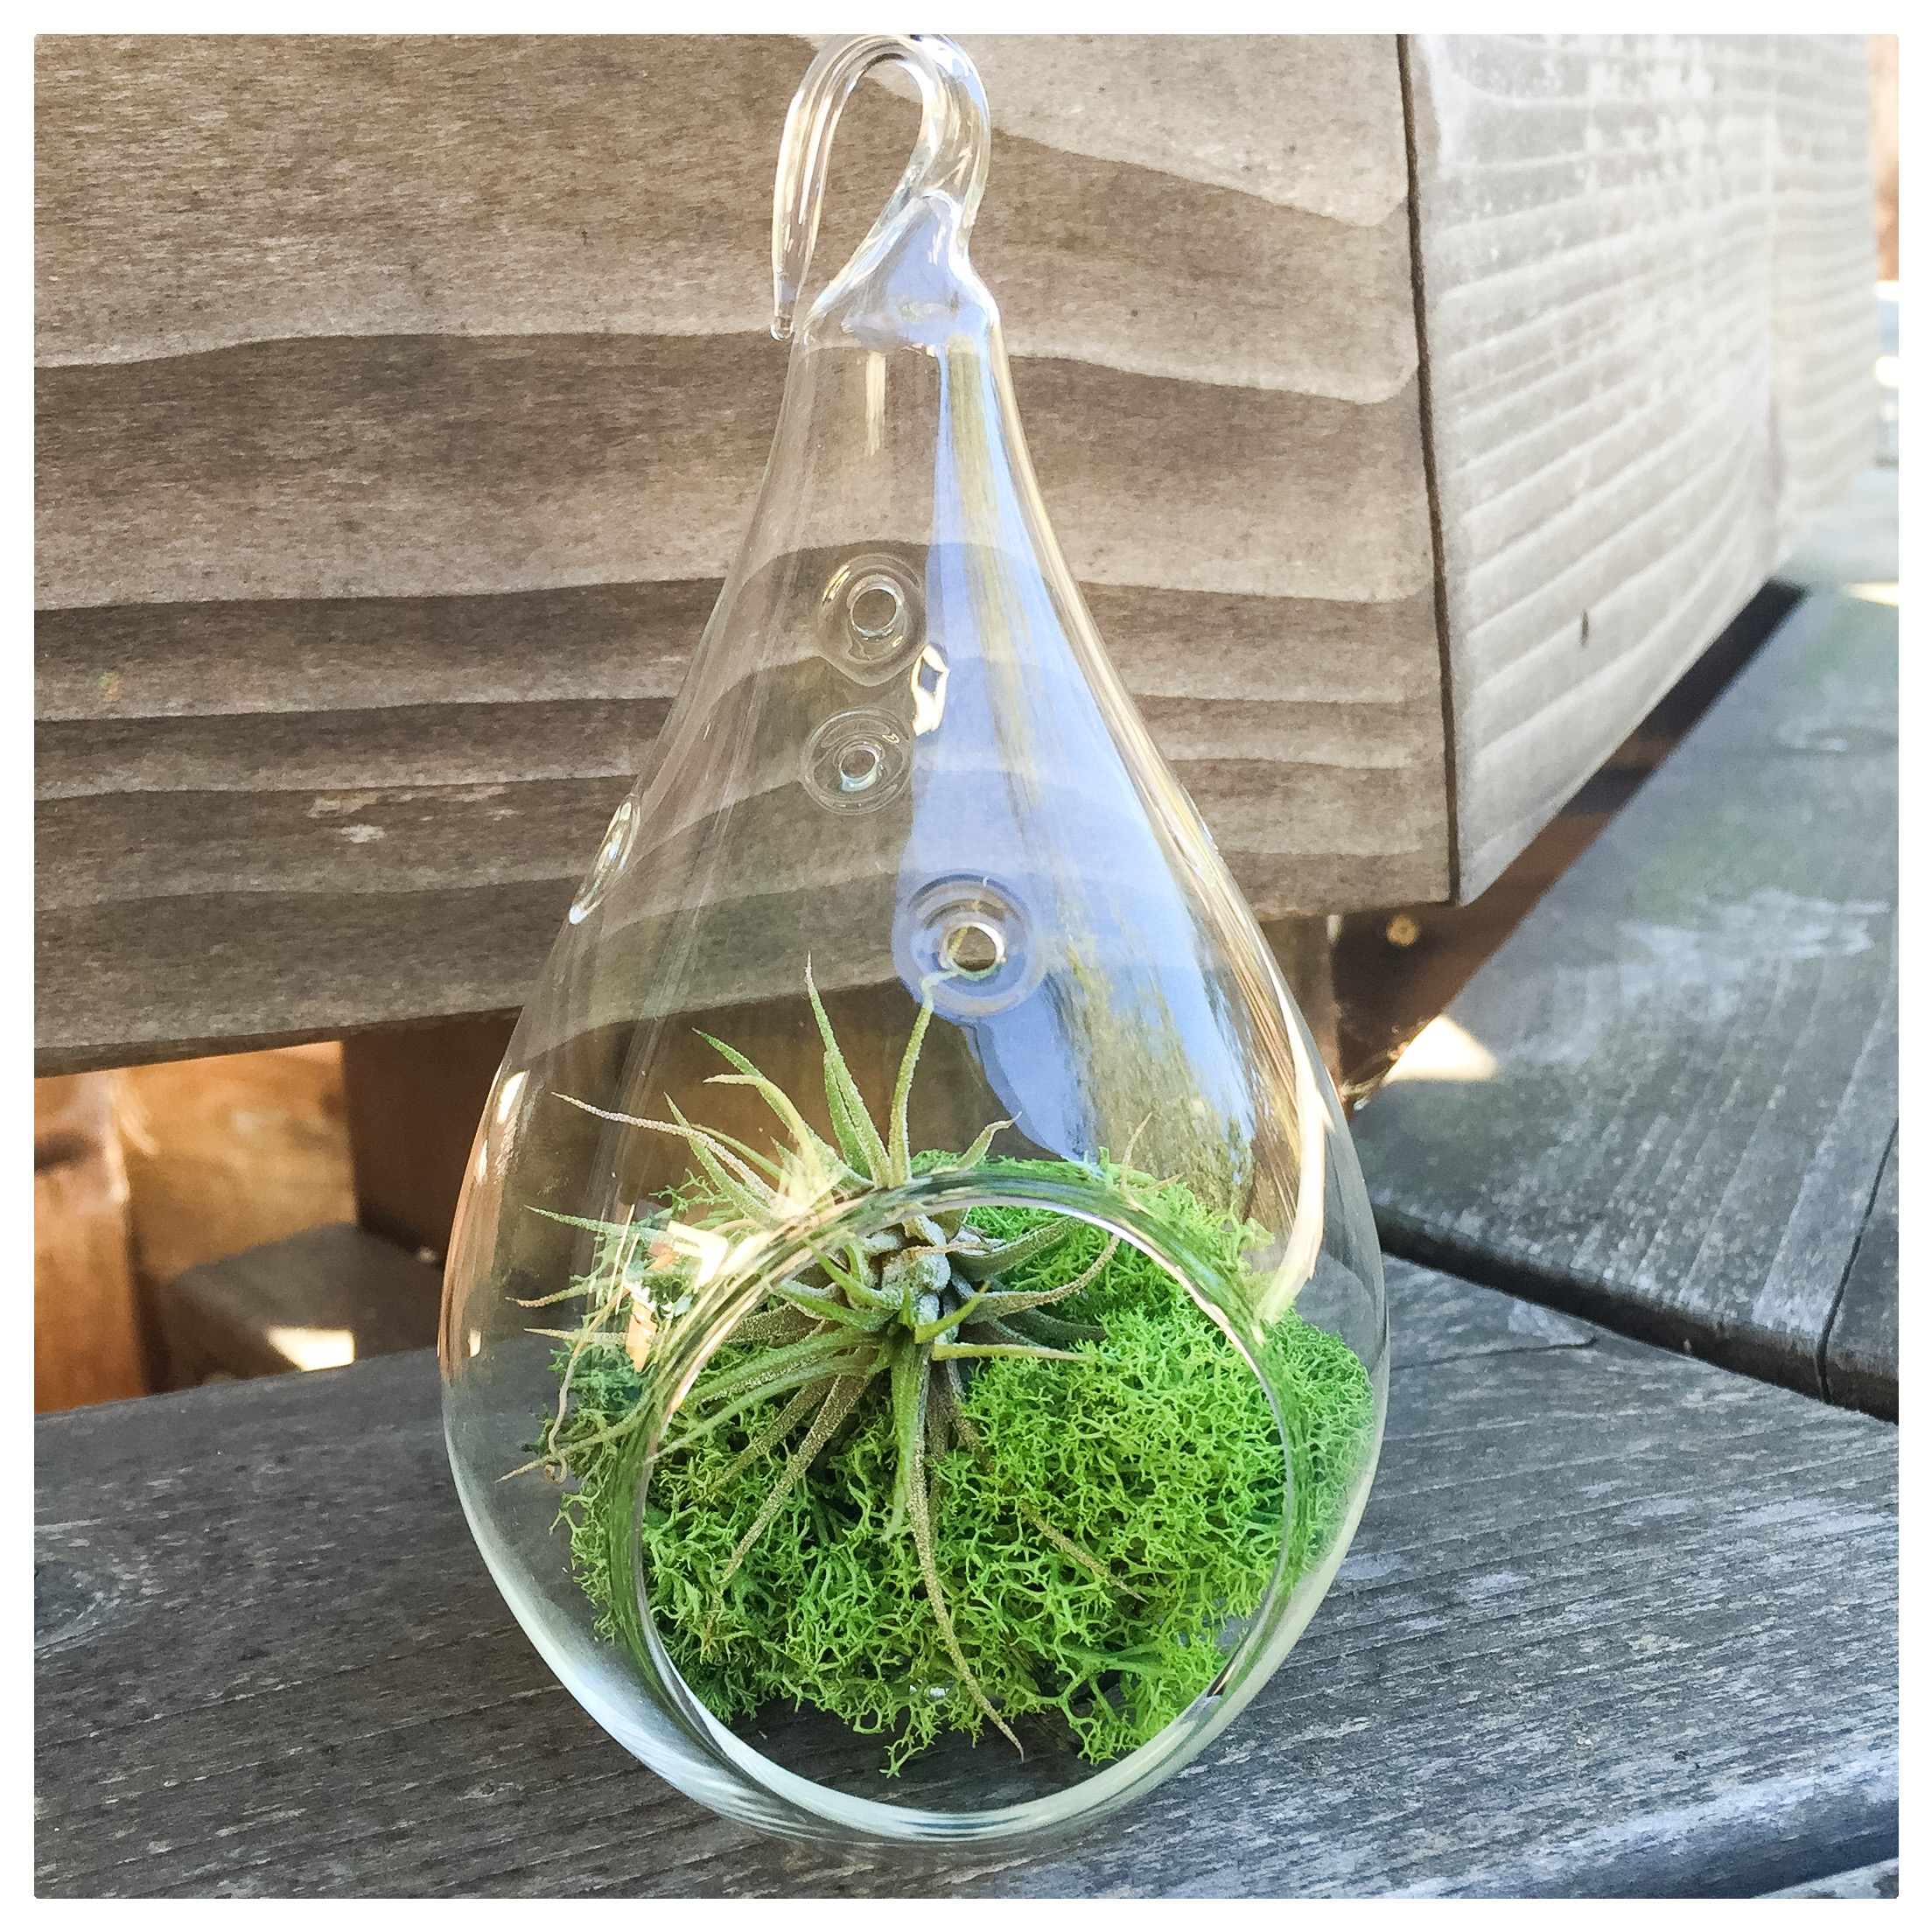 This little terrarium holds a tillandsia nestled on a bed of moss. Affectionally called the air plant, this little habitat will bring some green and life to your home with minimal attention. Instructions for care will be mailed to the winner.